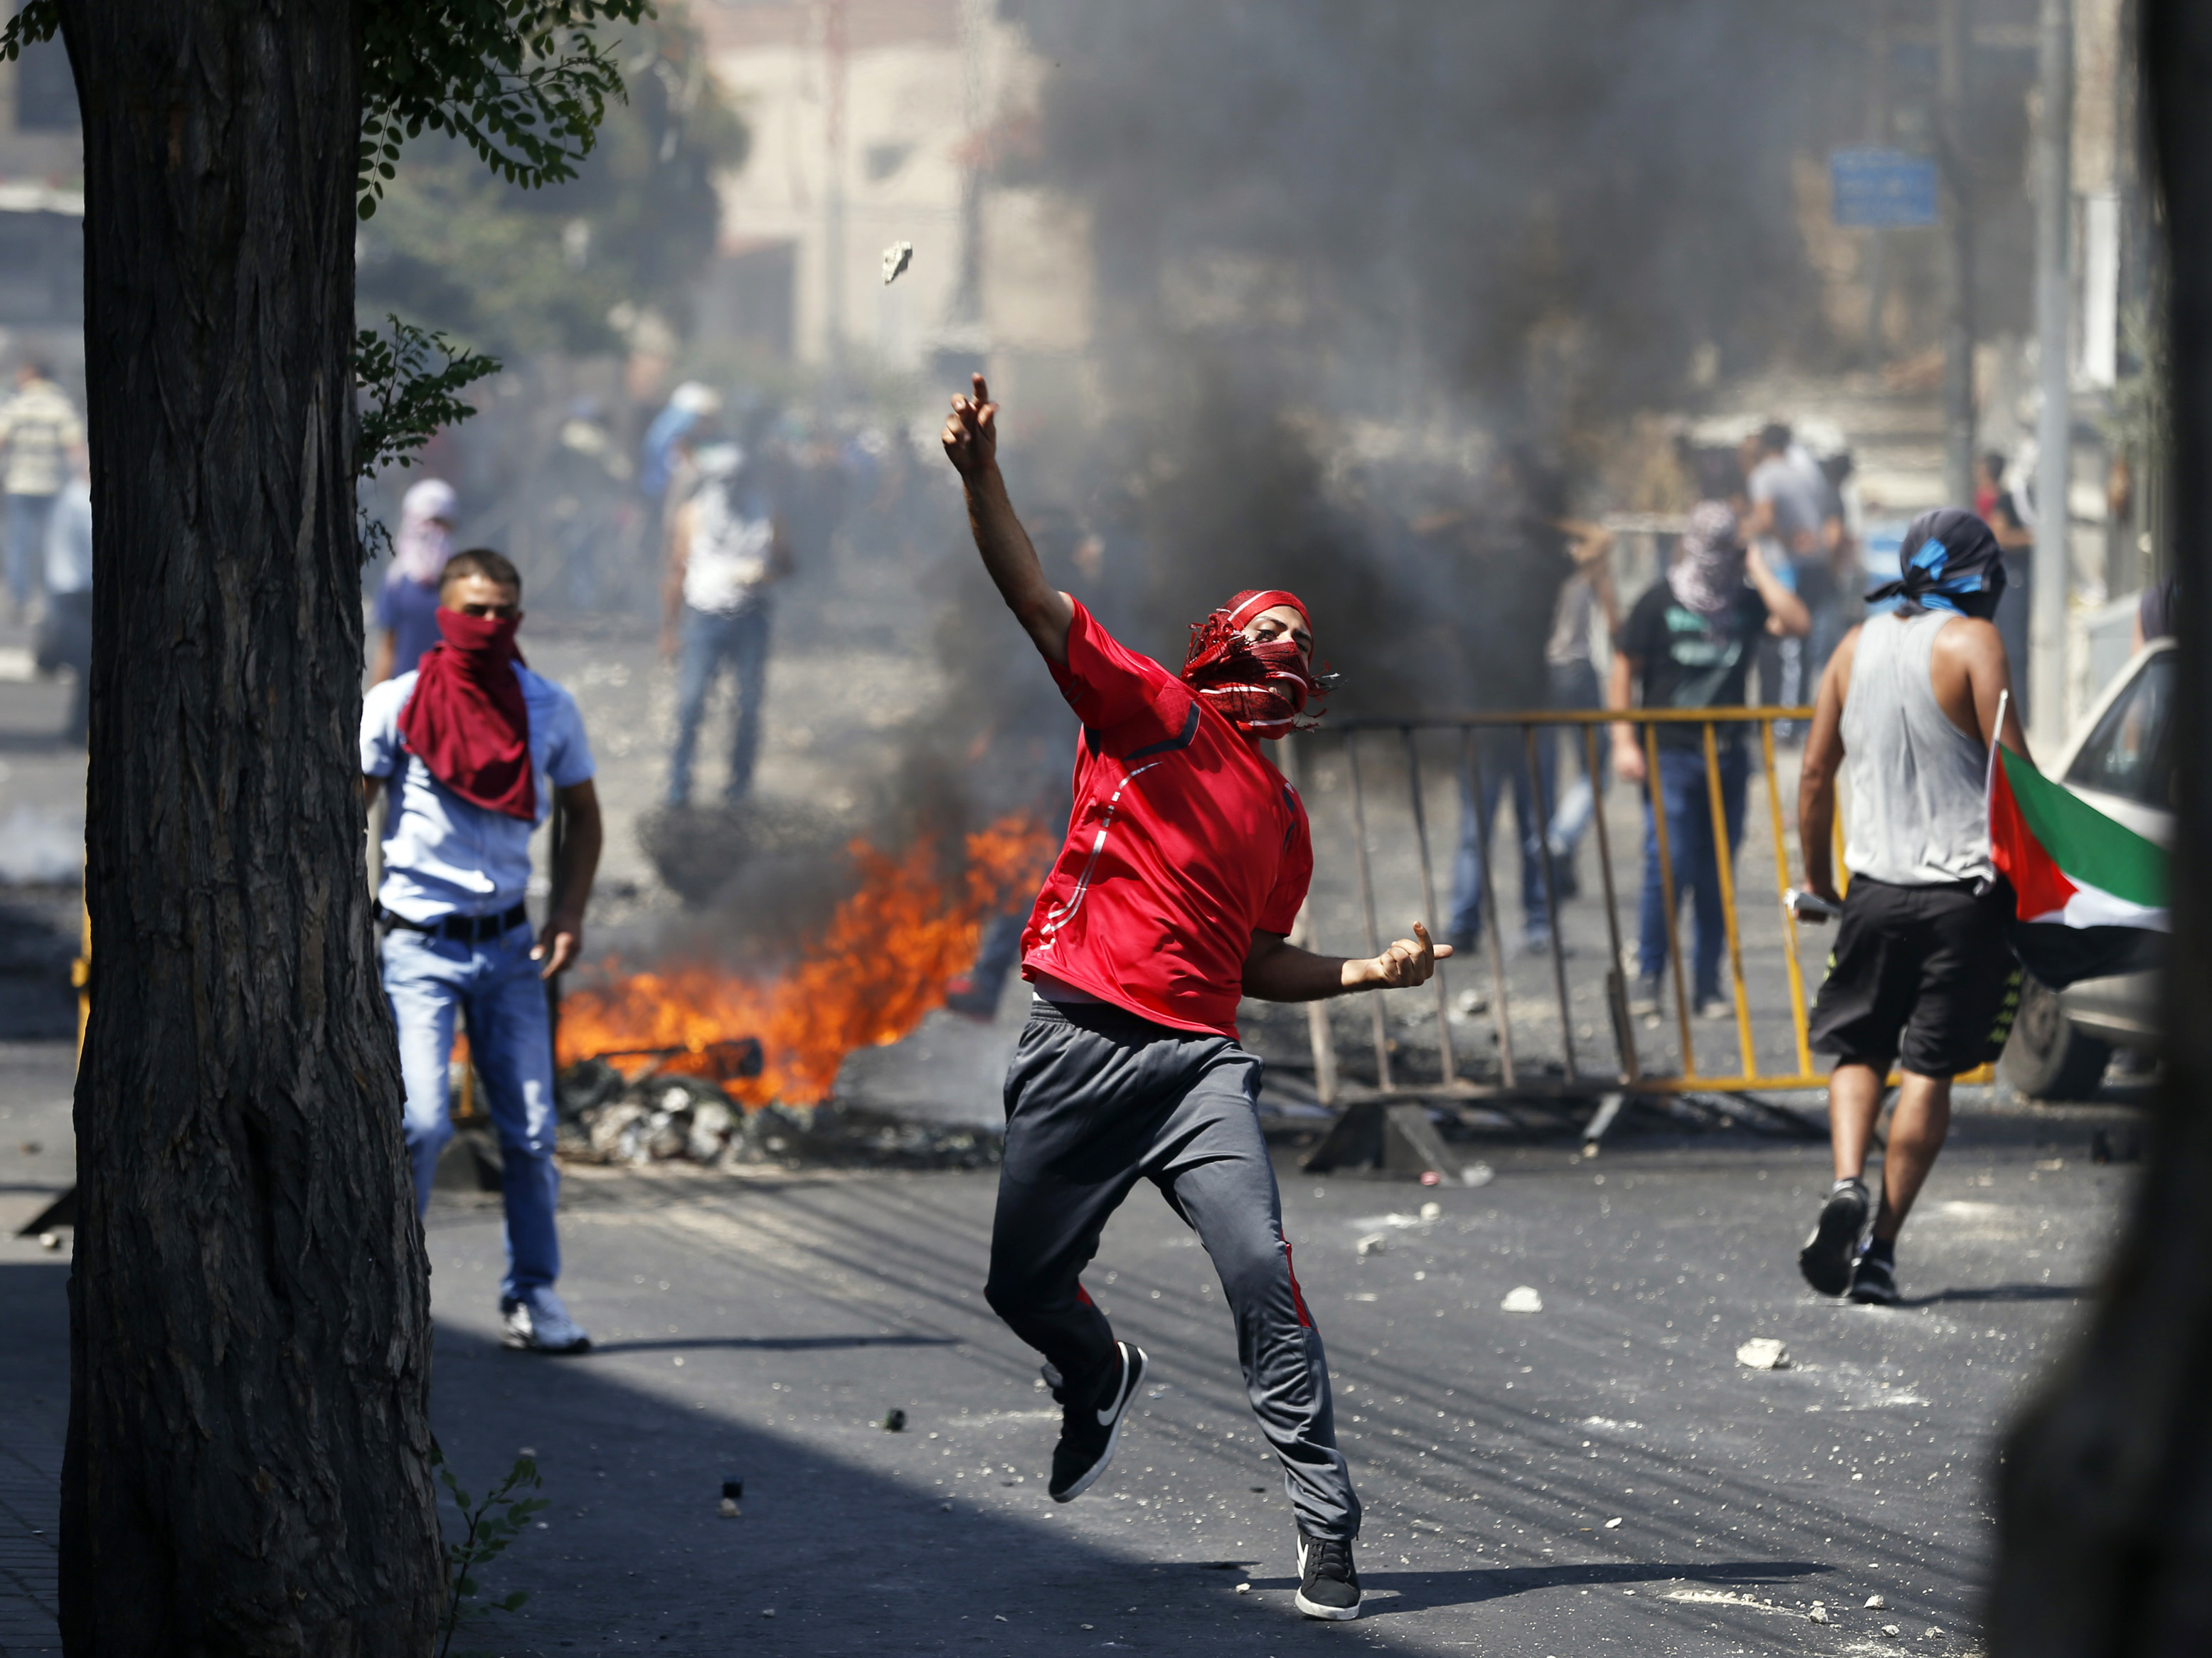 Clashes Erupt In Jerusalem Over Palestinian Teen's Funeral